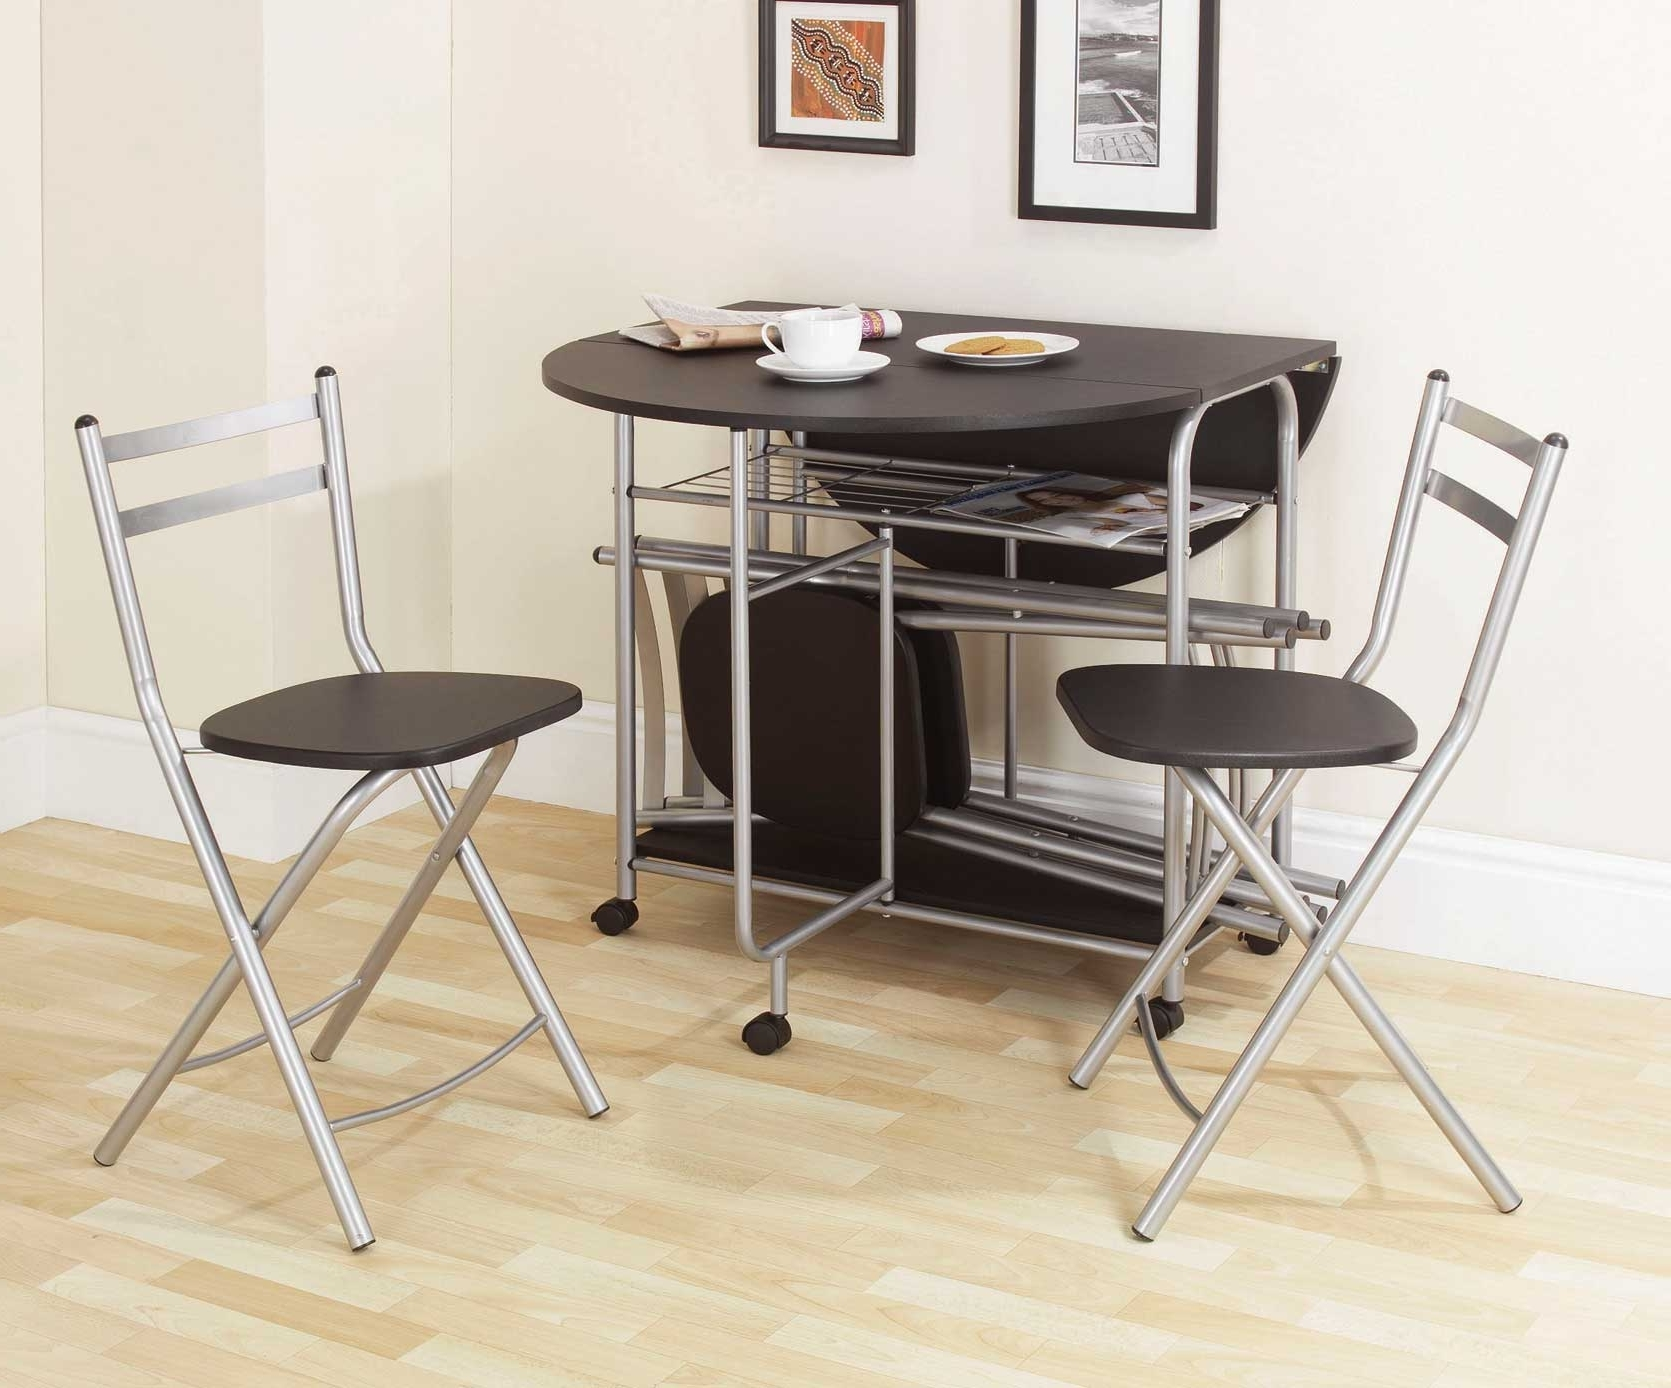 Cheap Kitchen Tables For Small Spaces Interesting Folding Tables For Small Spaces Interior Design Paradise